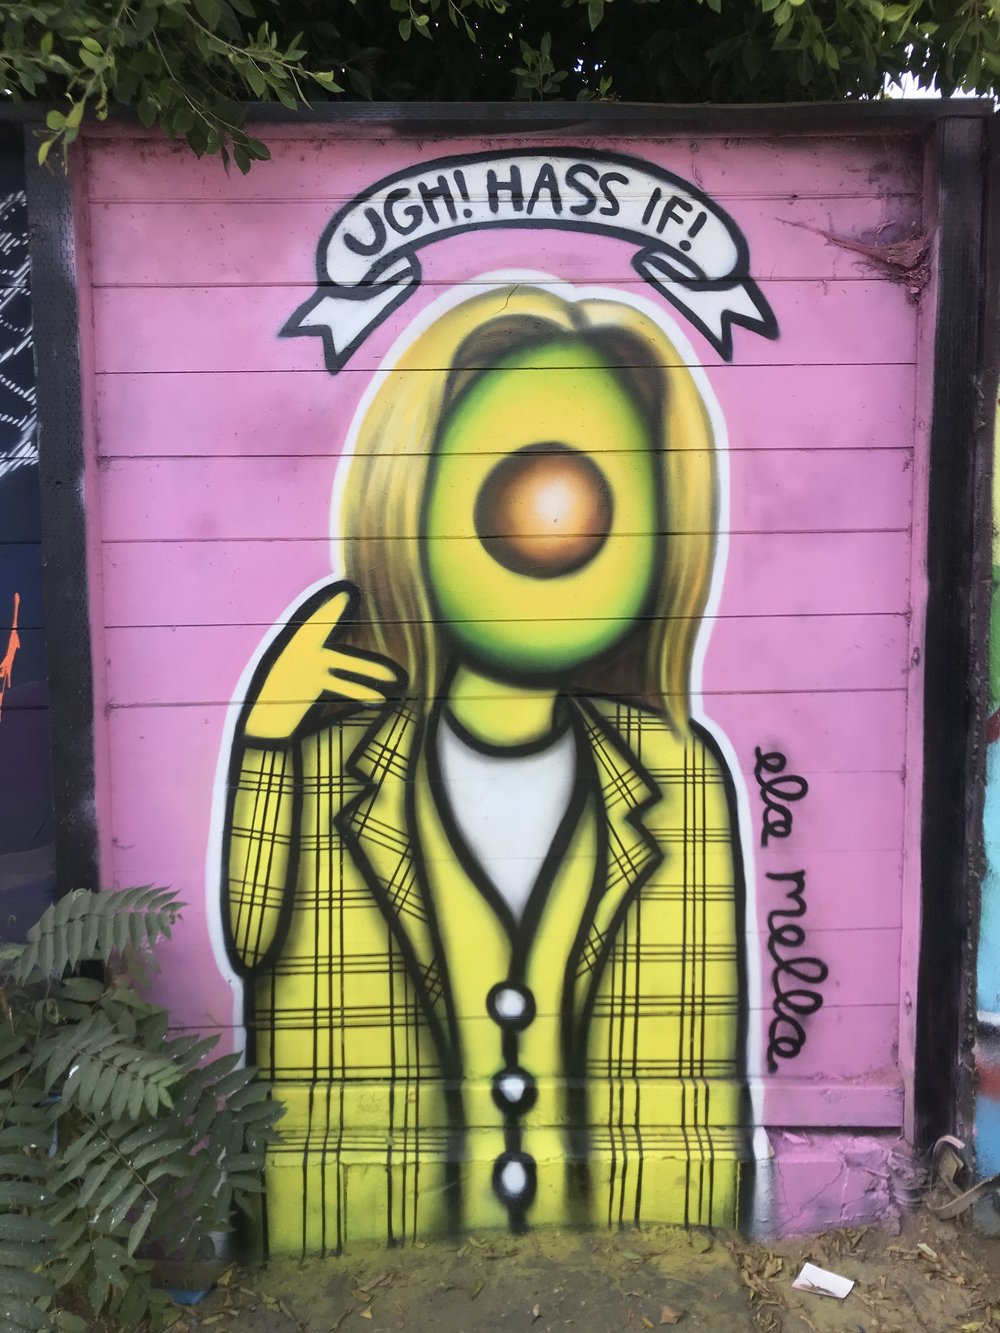 Ugh! Hass if! - The Fame Yard on Melrose & OgdenLos Angeles, California2018